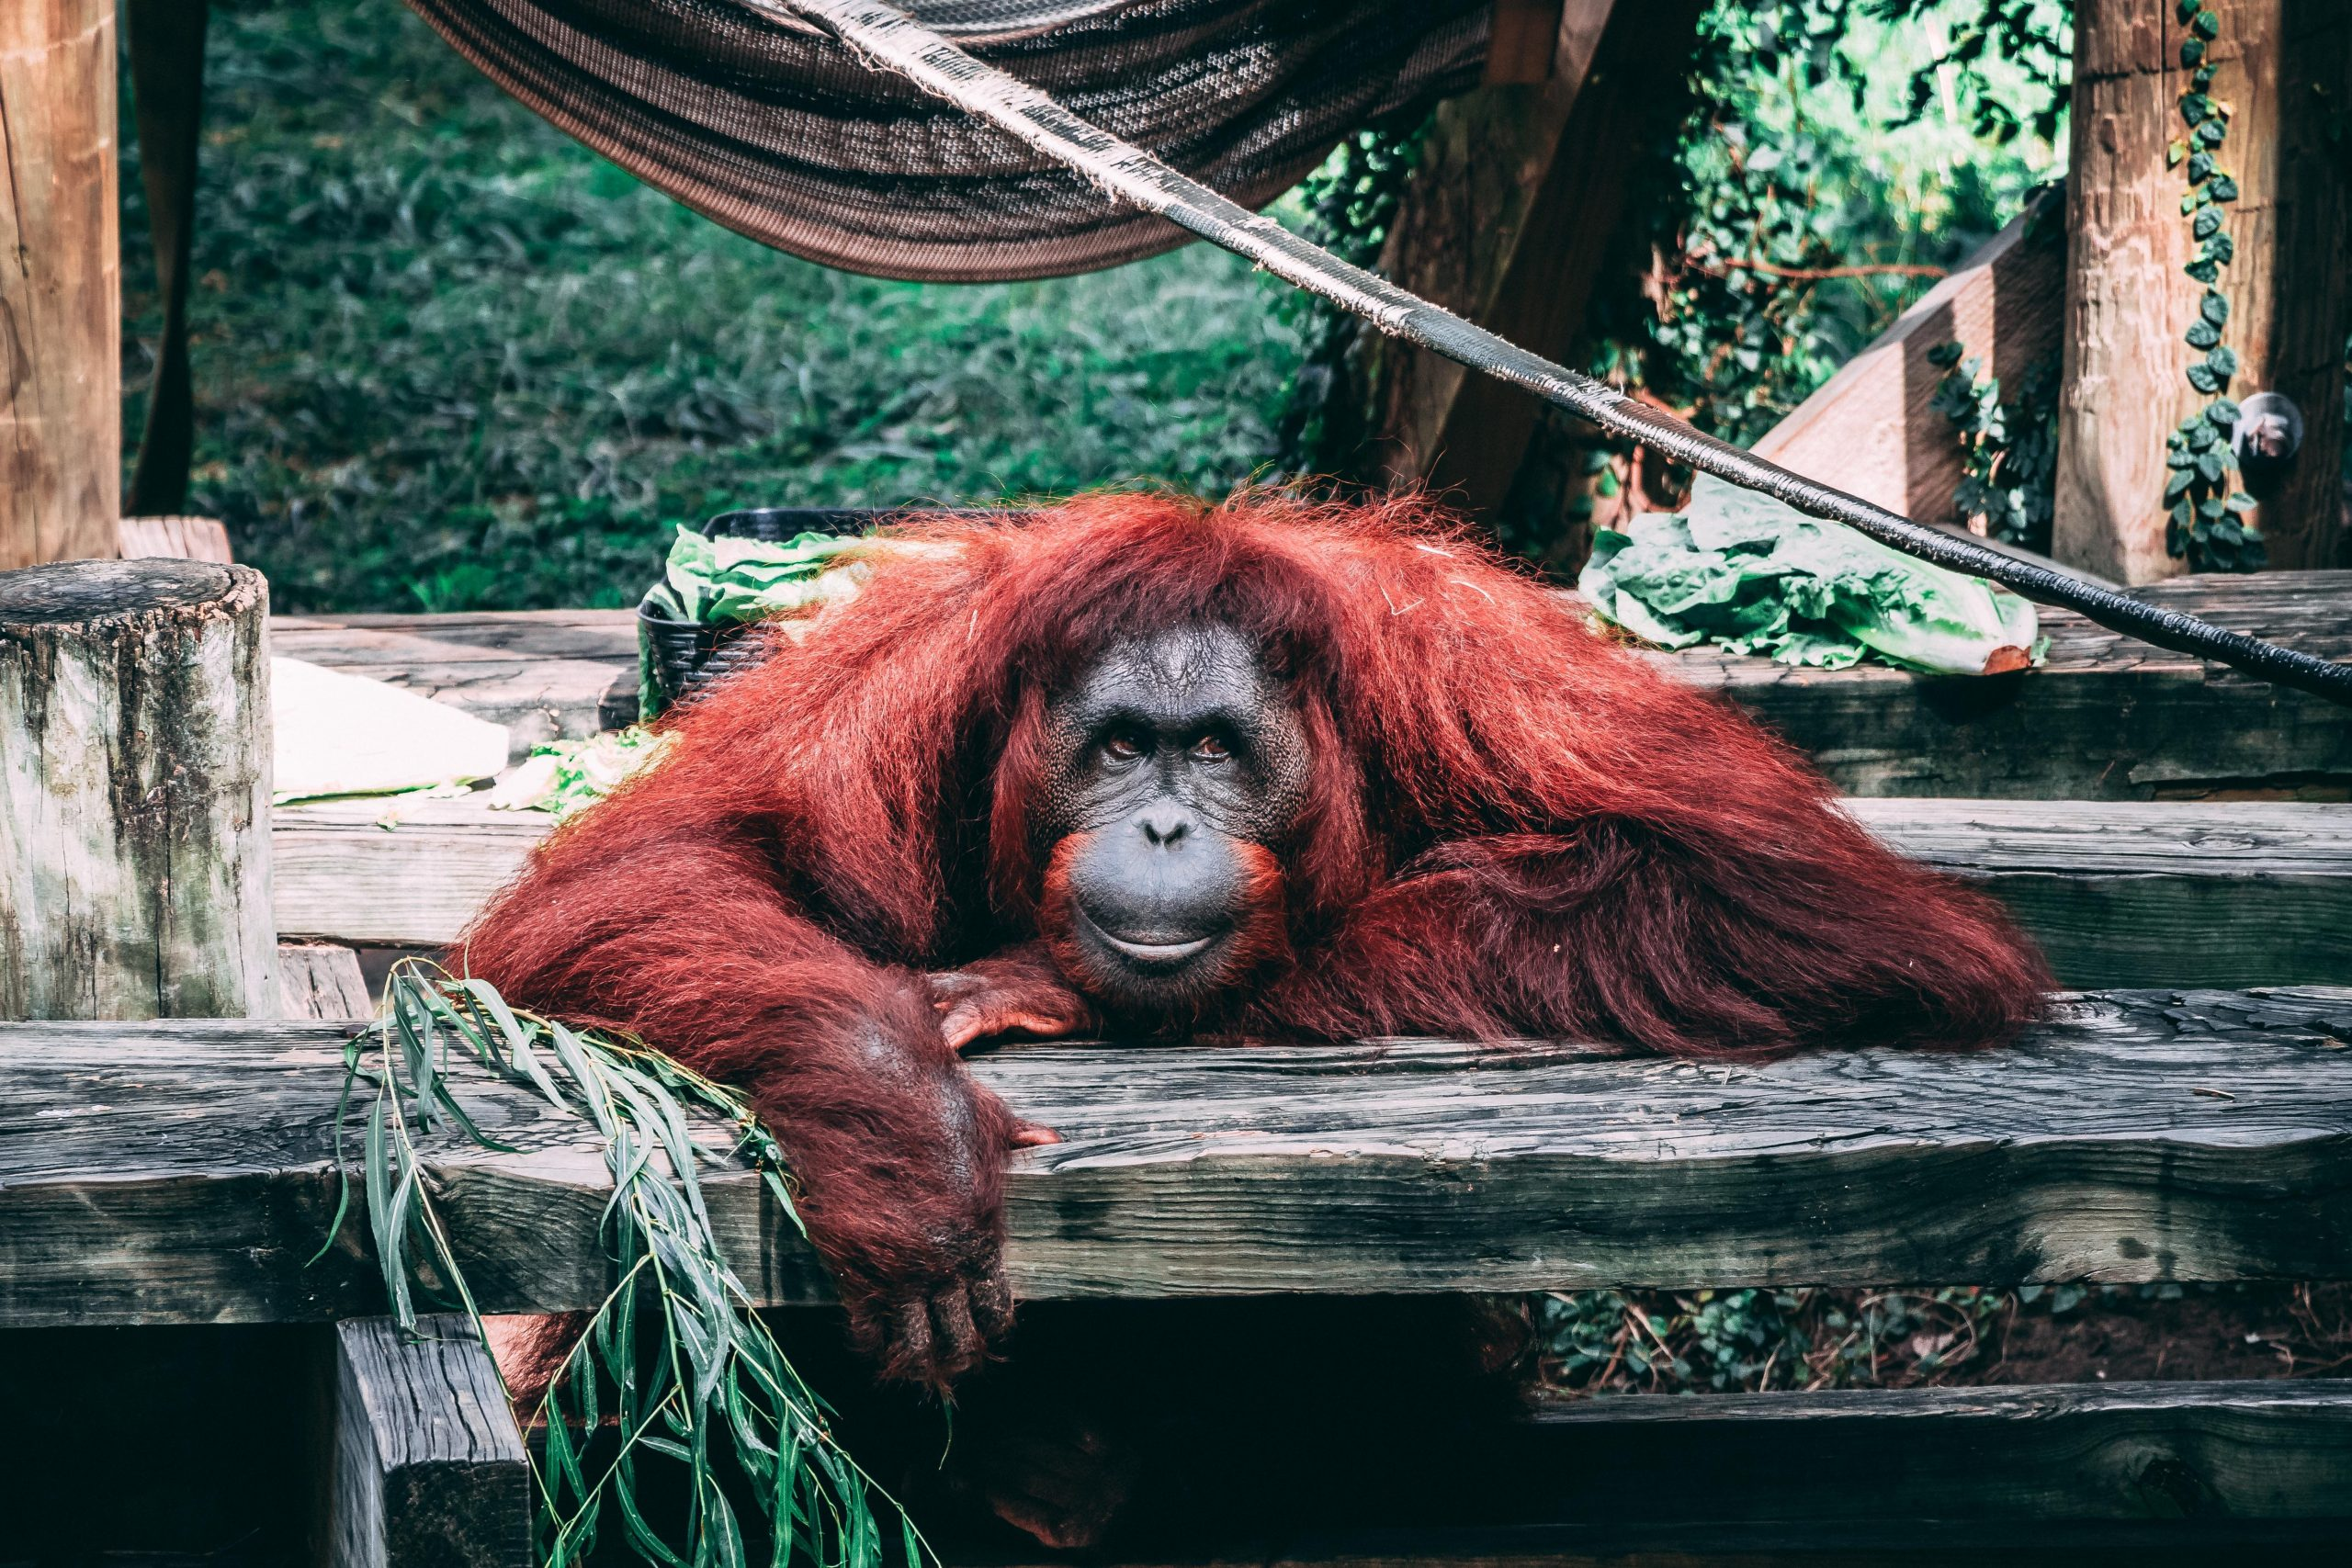 how much dna do we share with orangutans